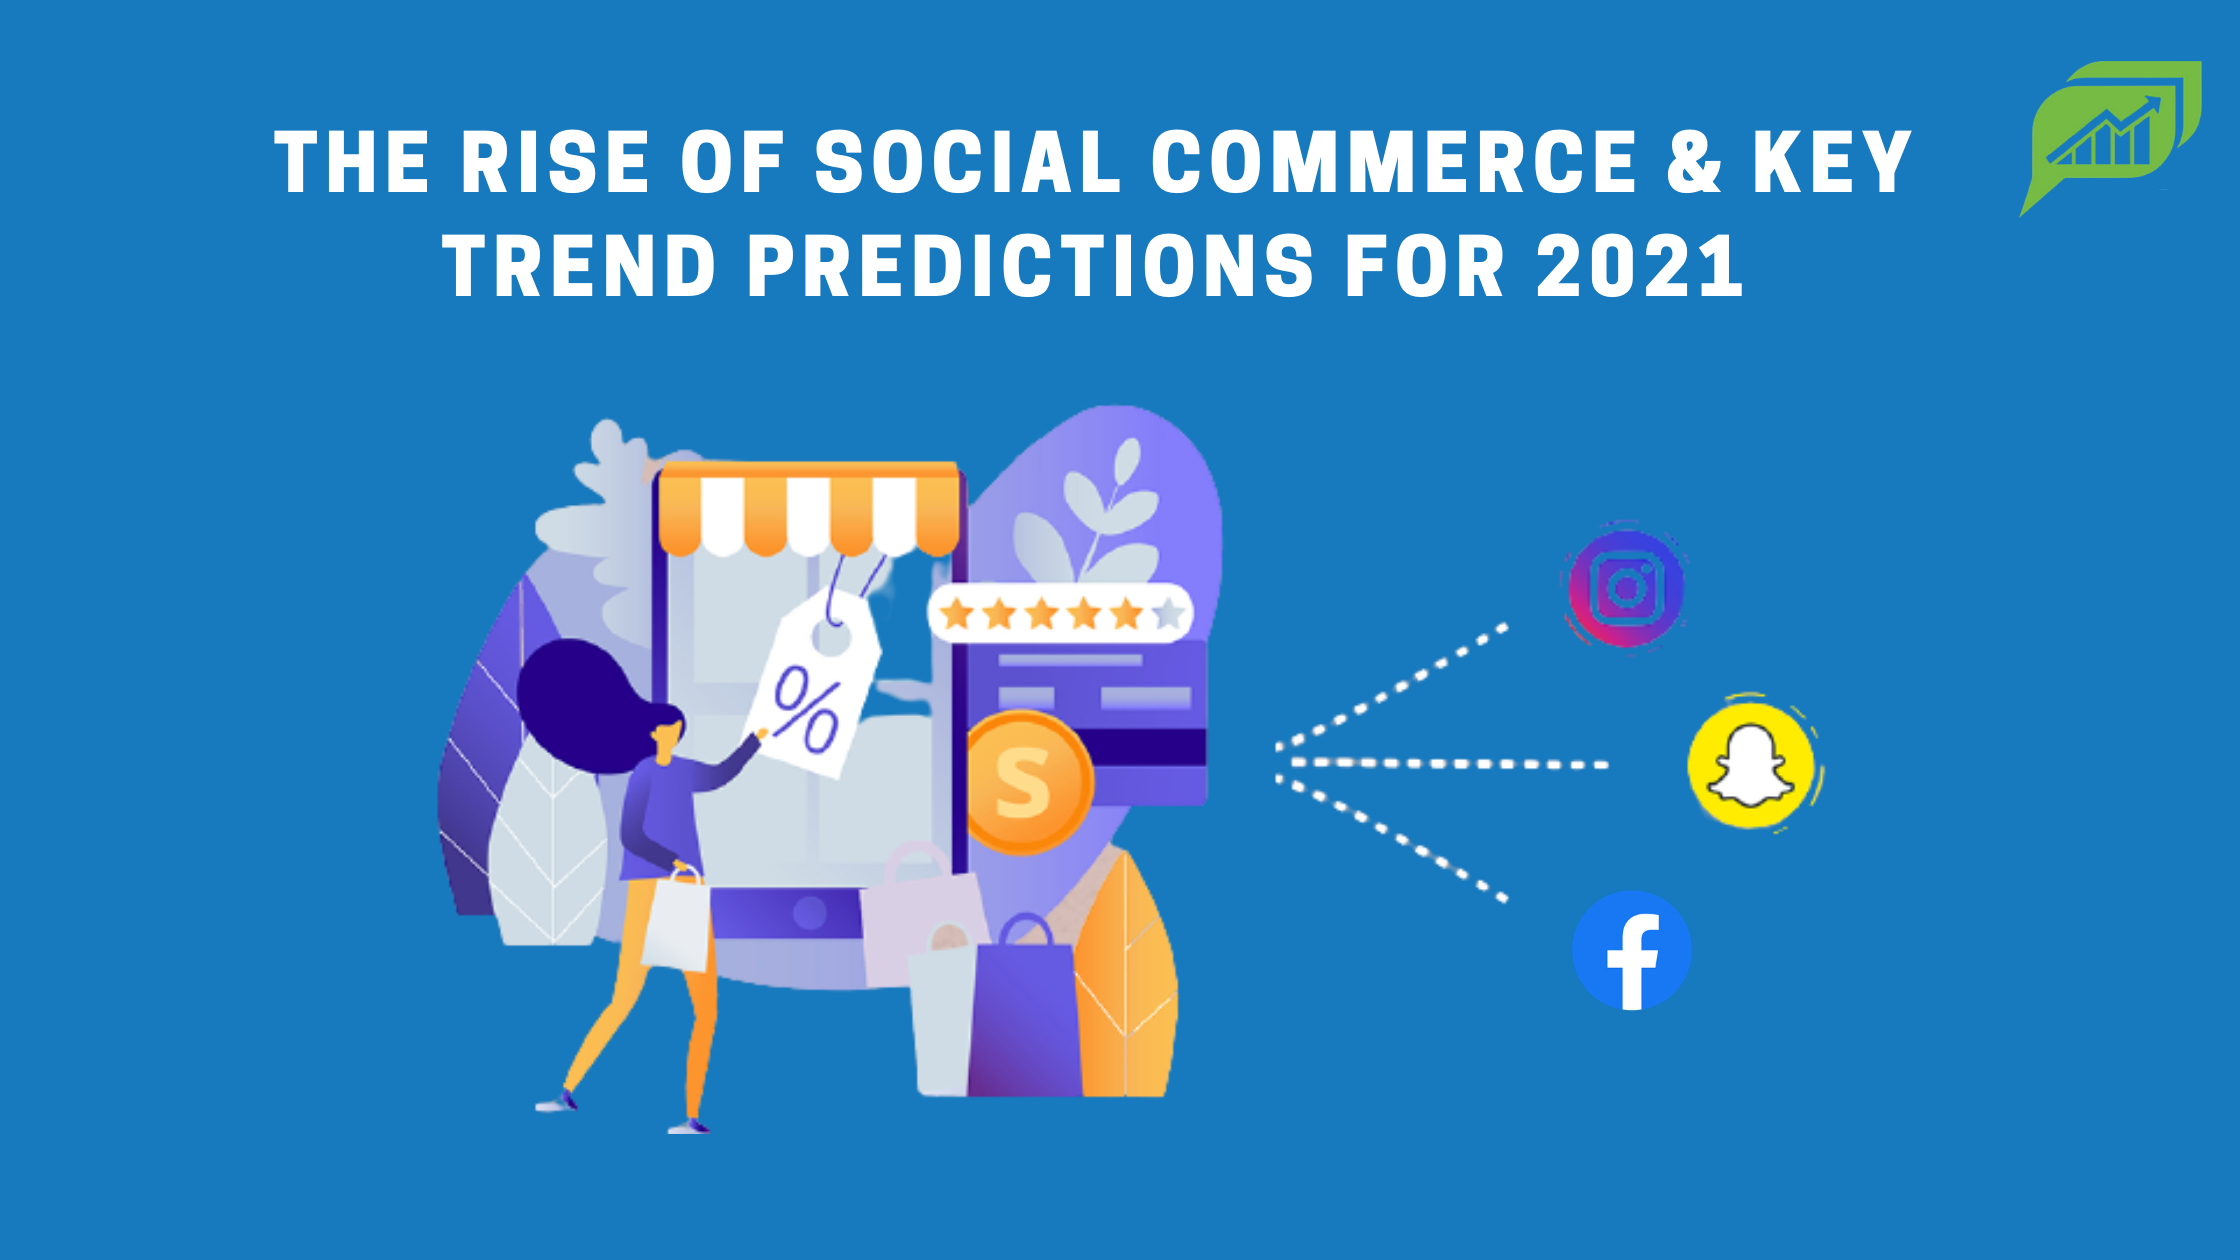 Rise & Trend Predictions for Social Commerce in 2021